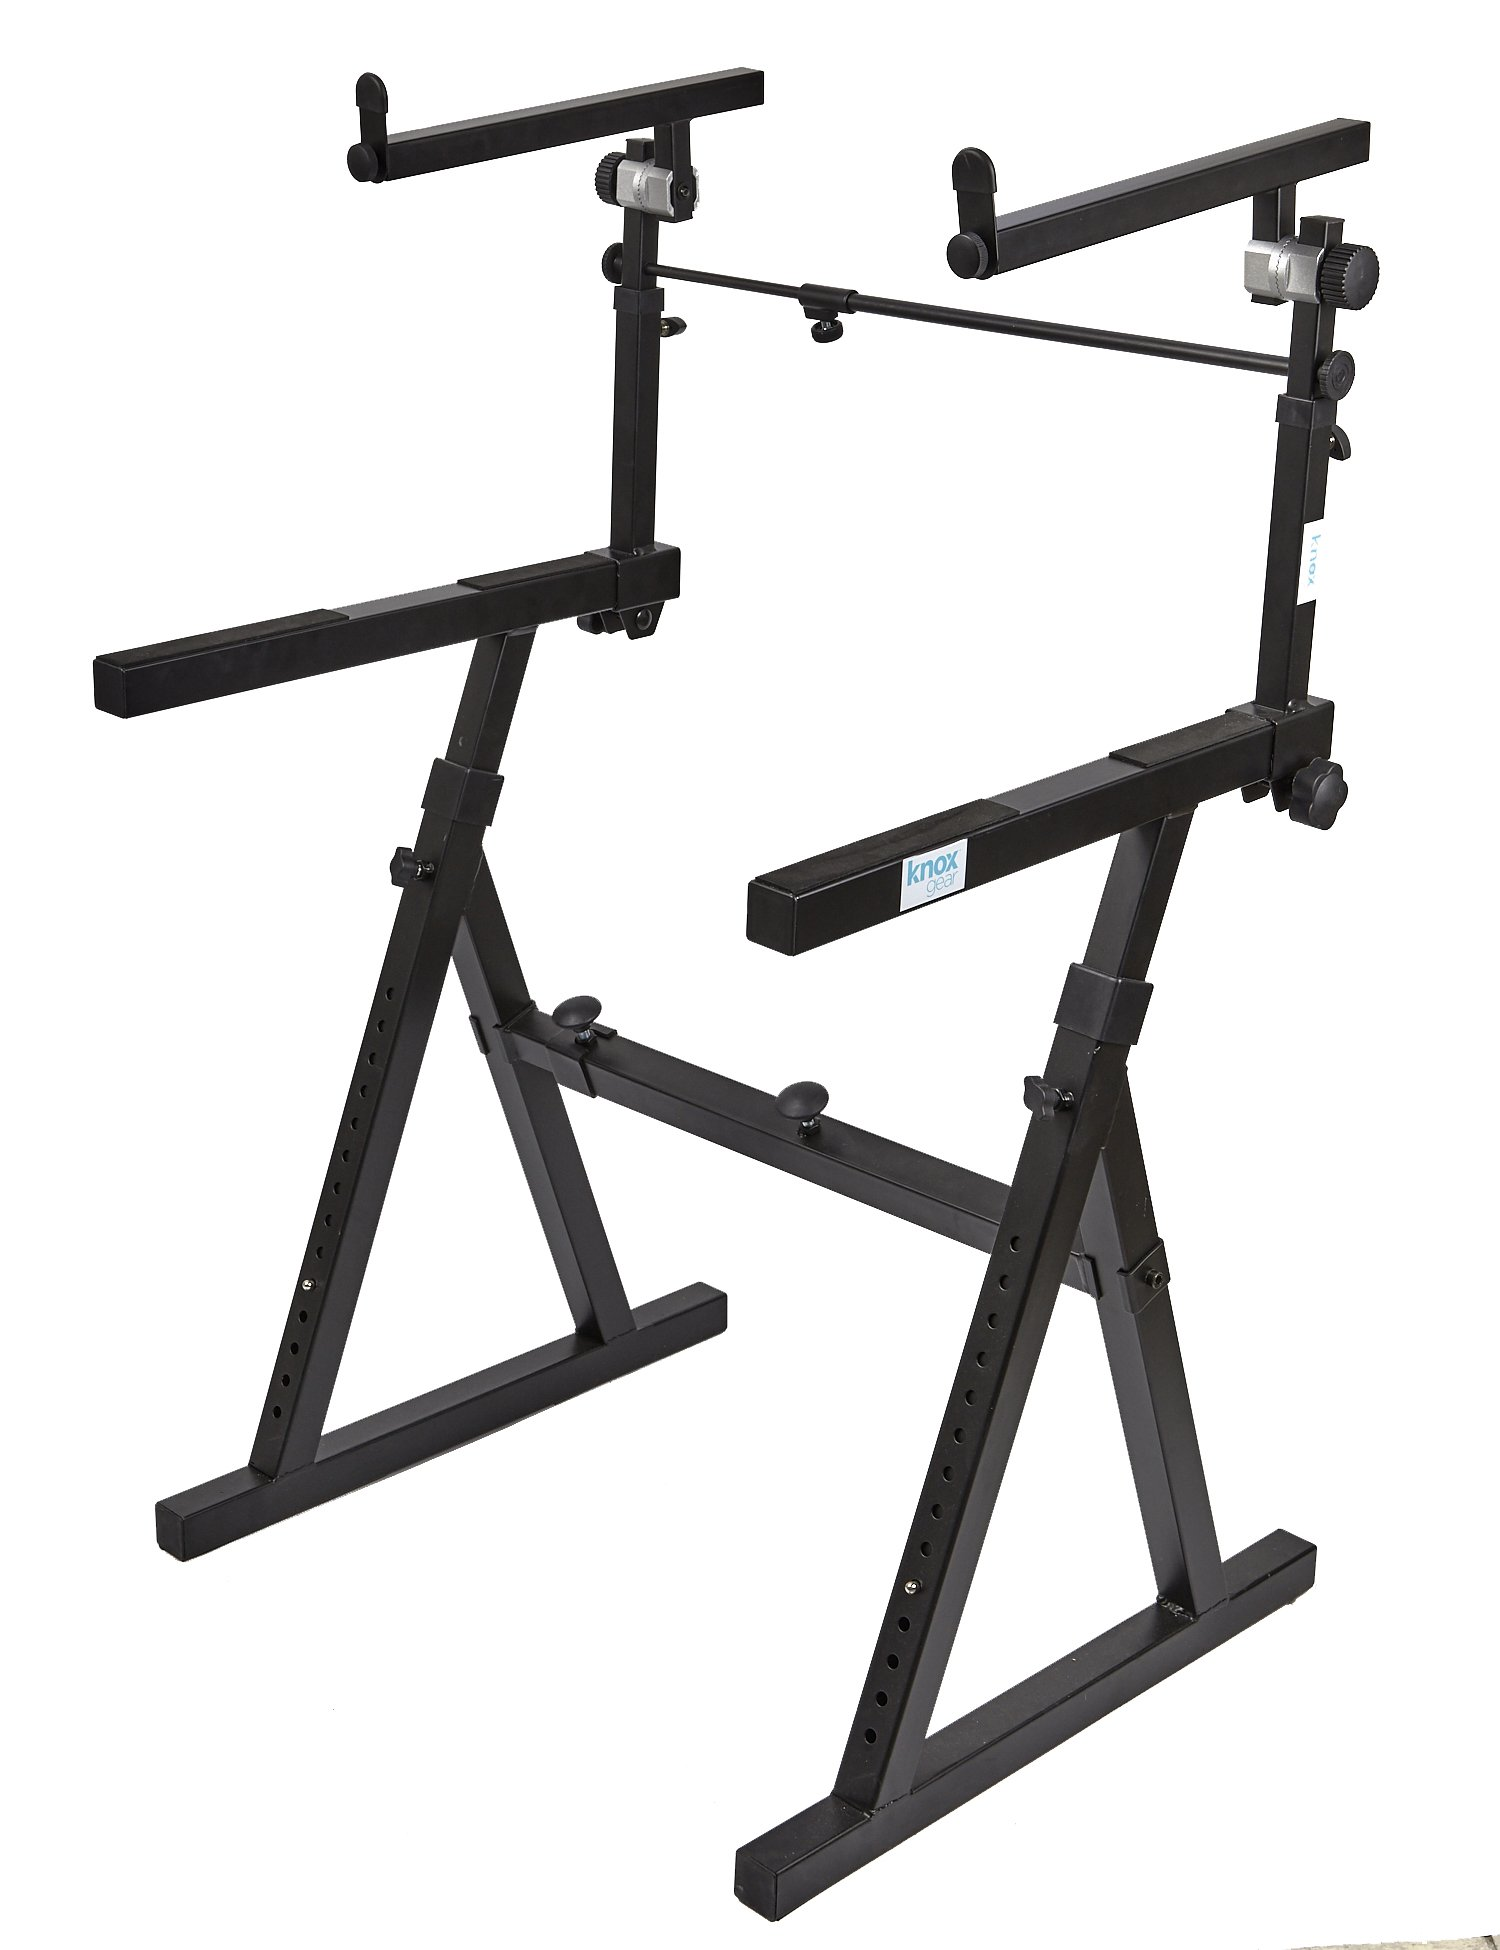 Knox Gear Z-Style Two Tier Electronic Keyboard Piano Stand